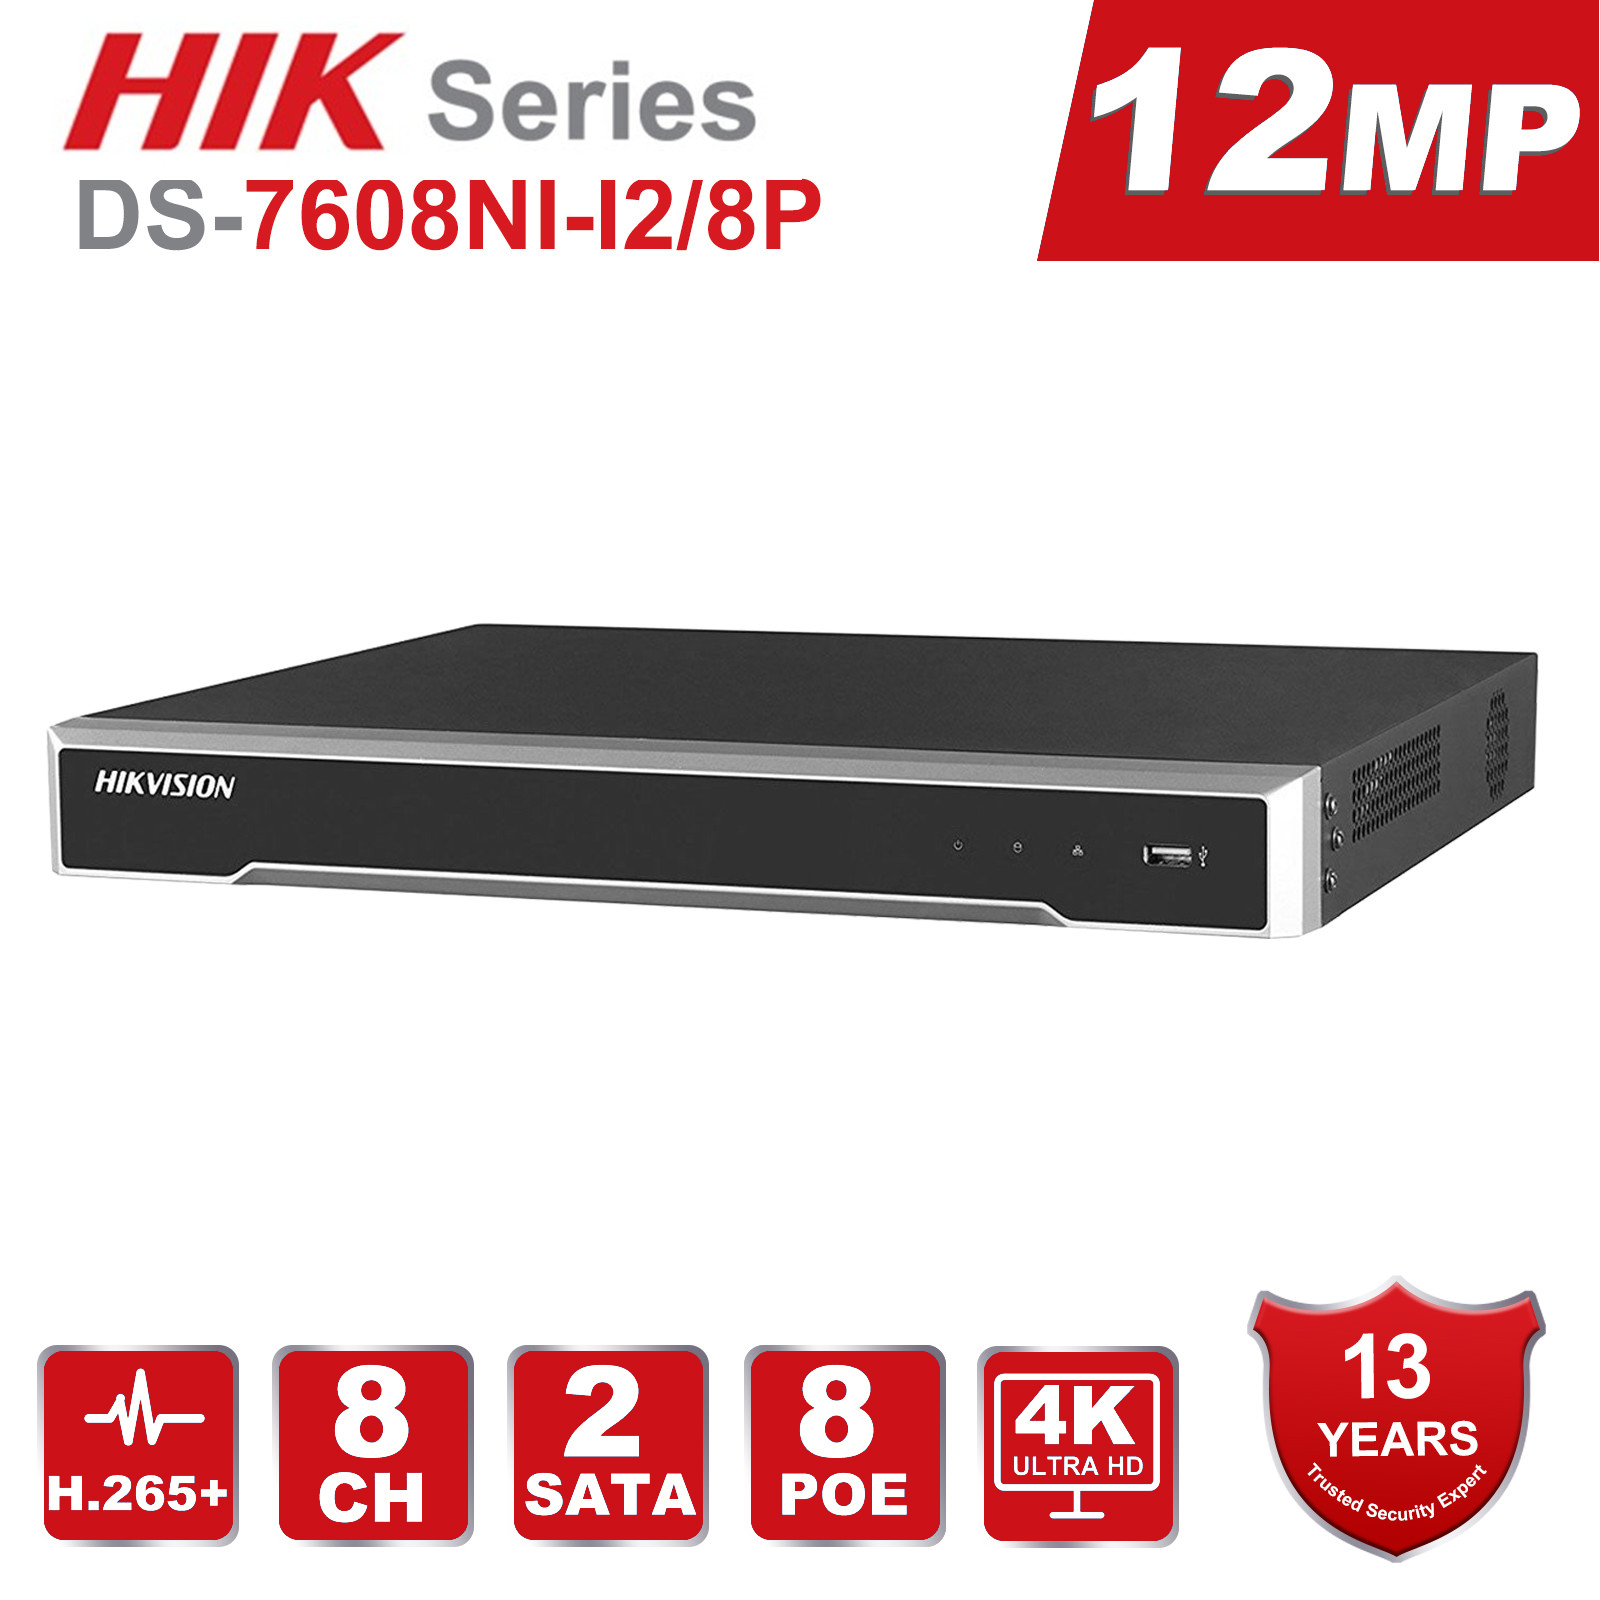 Hikvision 8ch CCTV Recorder PoE NVR DS-7608NI-I2/8 P 8 Kanal Embedded Plug & Play 4K Netzwerk Video recorder mit 8 PoE Port H.265